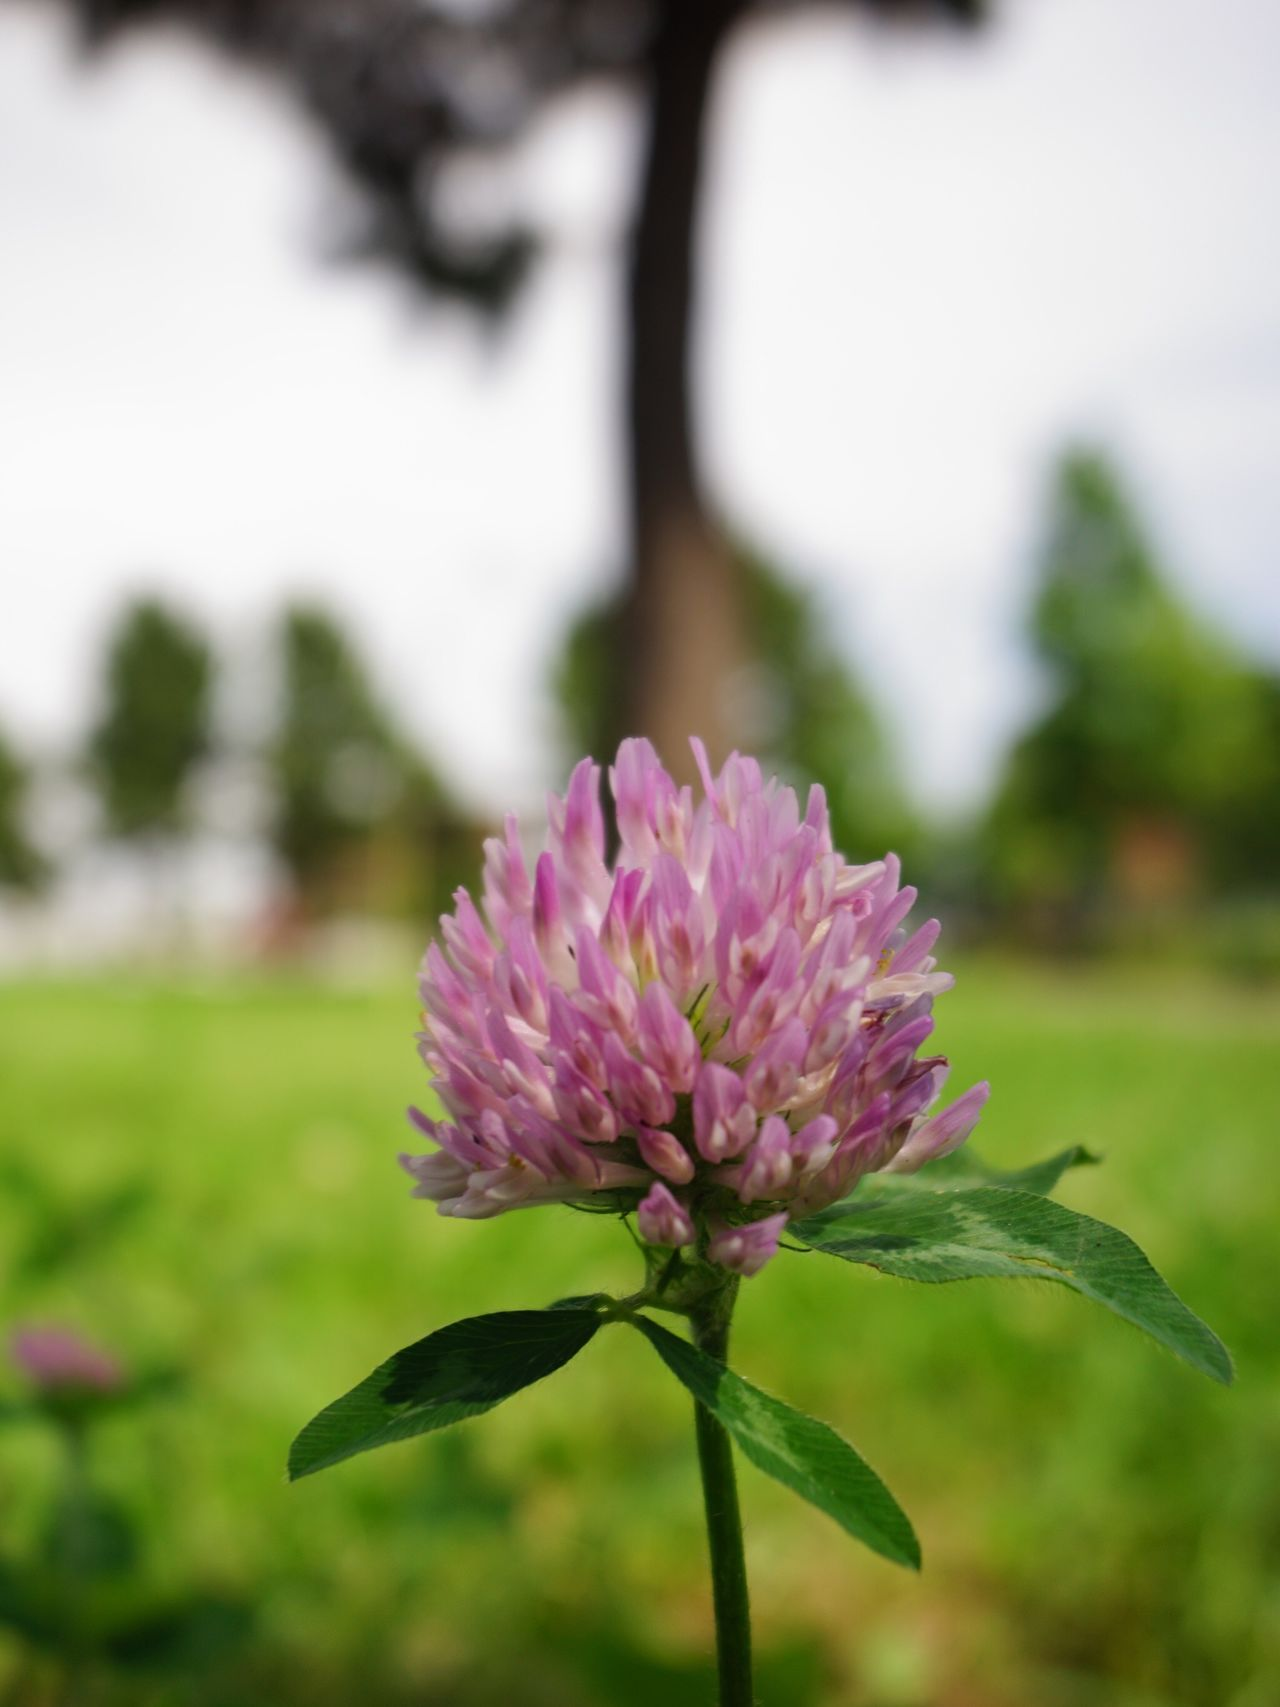 Pink Clover Pink Clover Bokeh Bokeh Photography Flower Nature In The City Green In The City Nature City Life Streetphotography Street Photography The Purist (no Edit, No Filter) EyeEm Best Shots EyeEm Best Shots - Nature EyeEm Best Shots - Flowers Snapshot Taking Photos Walking Around お写ん歩